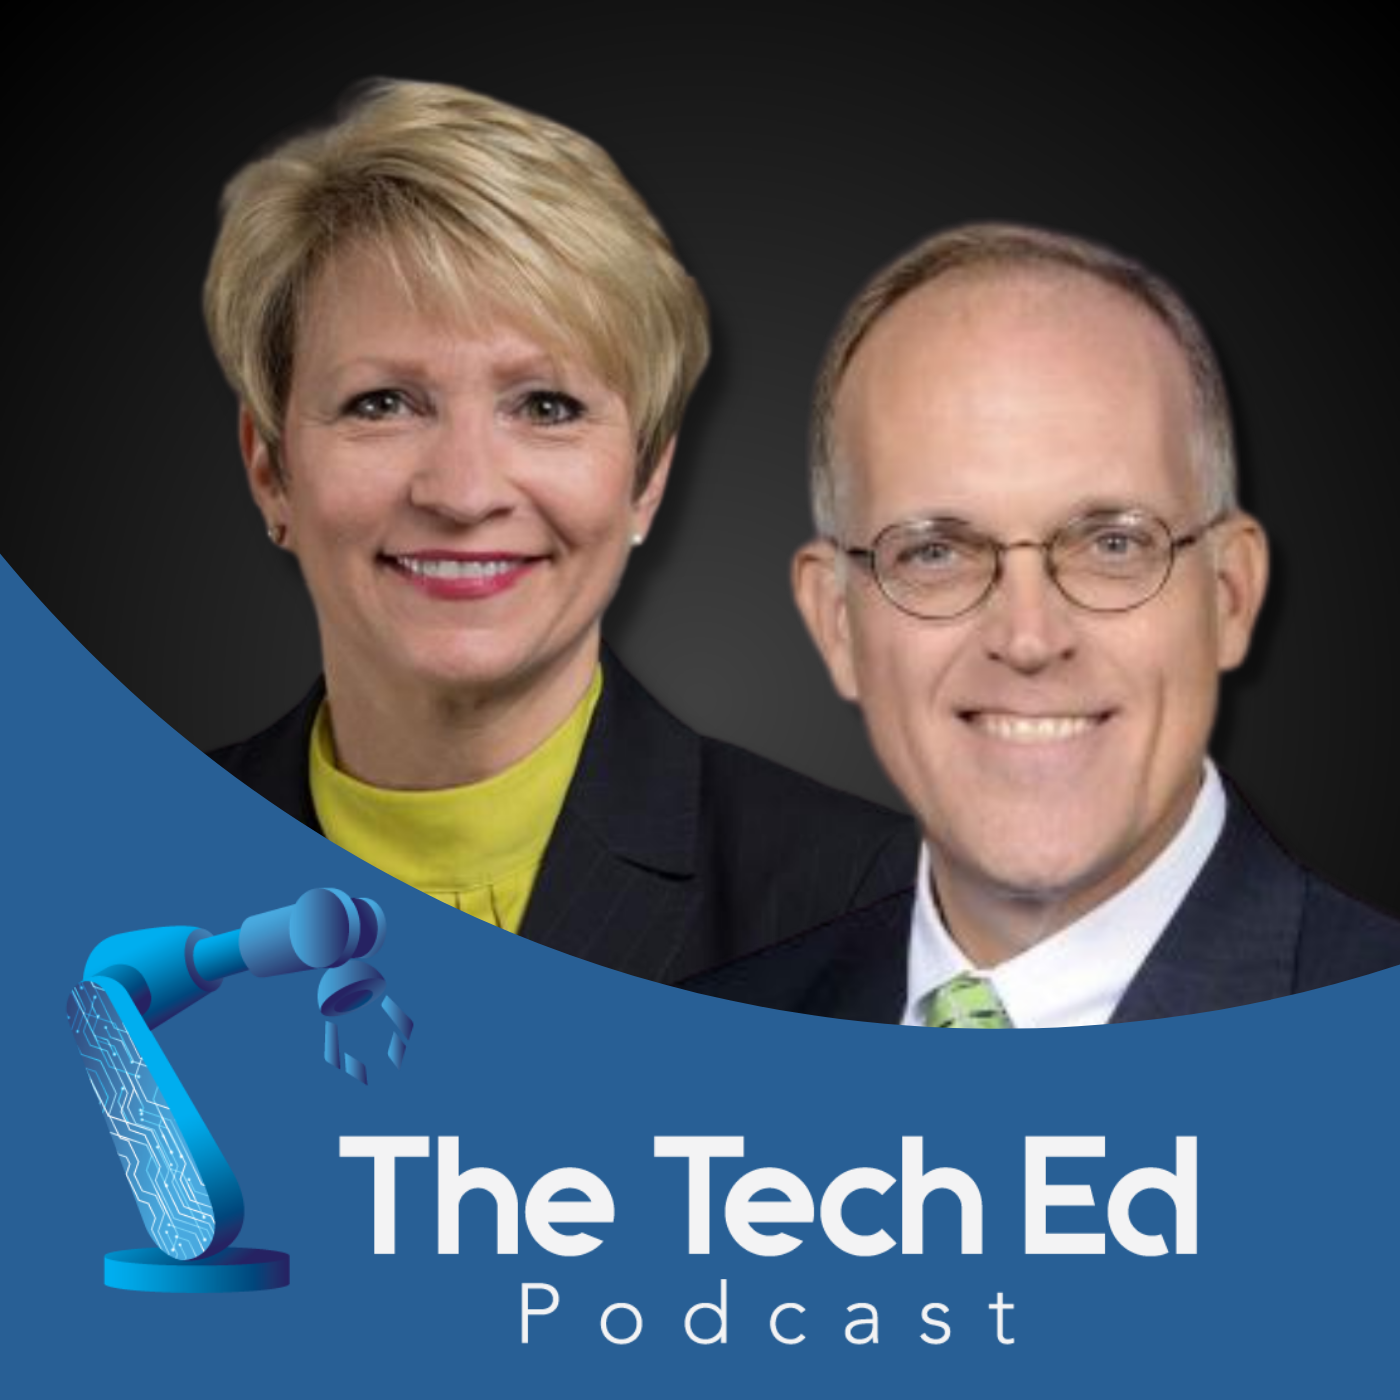 Sue Ellspermann and Chris Lowery on The TechEd Podcast